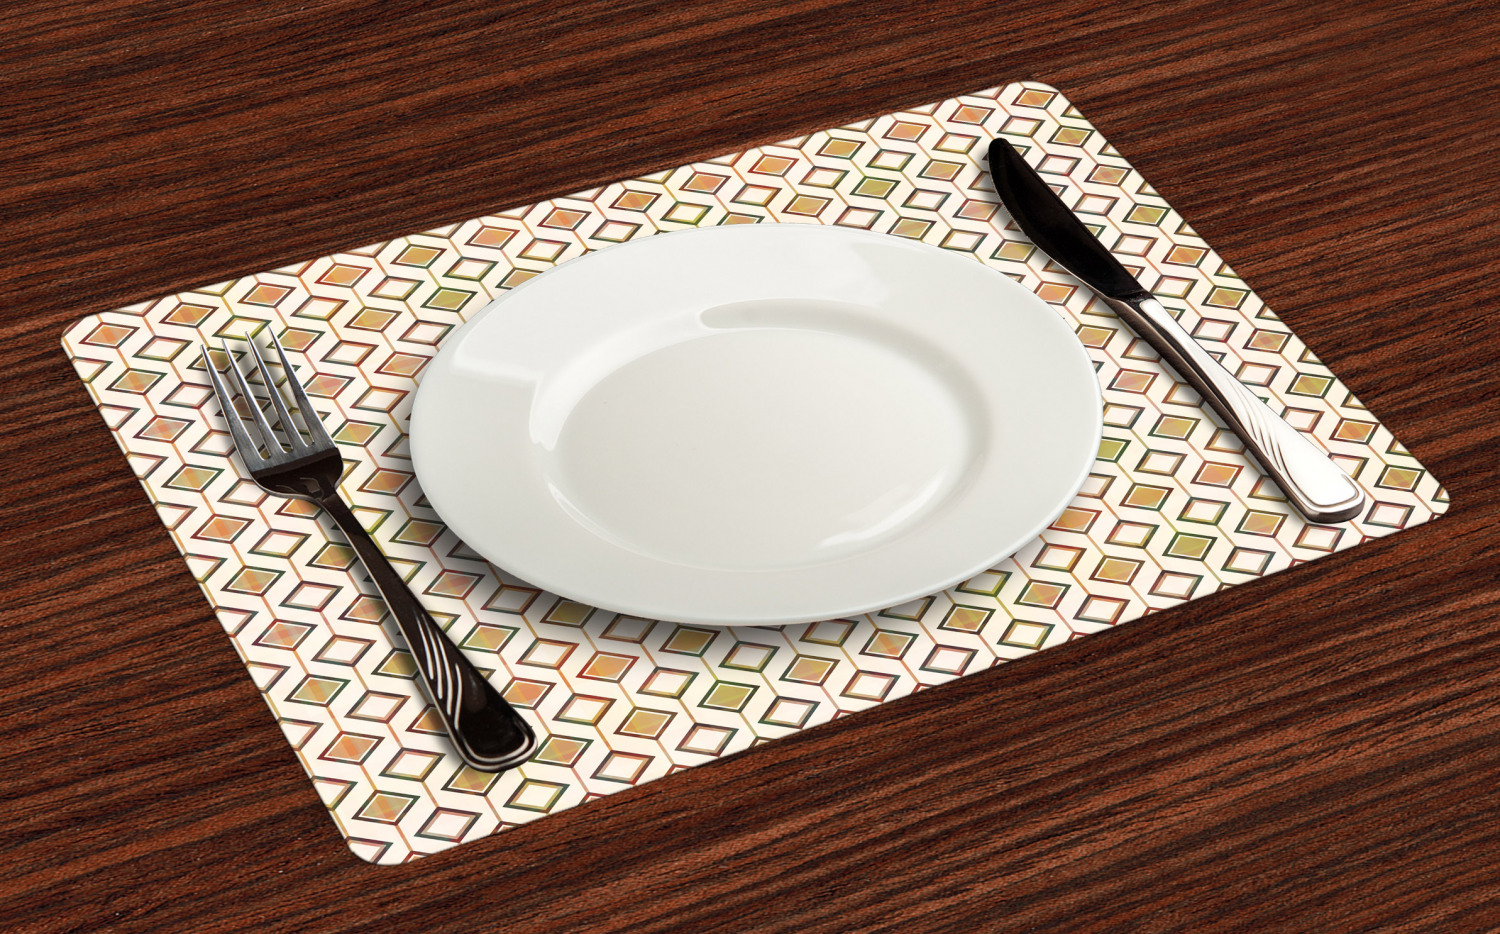 Ambesonne-Fabric-Place-Mats-Set-of-4-Placemats-for-Dining-Room-and-Kitchen-Table thumbnail 217